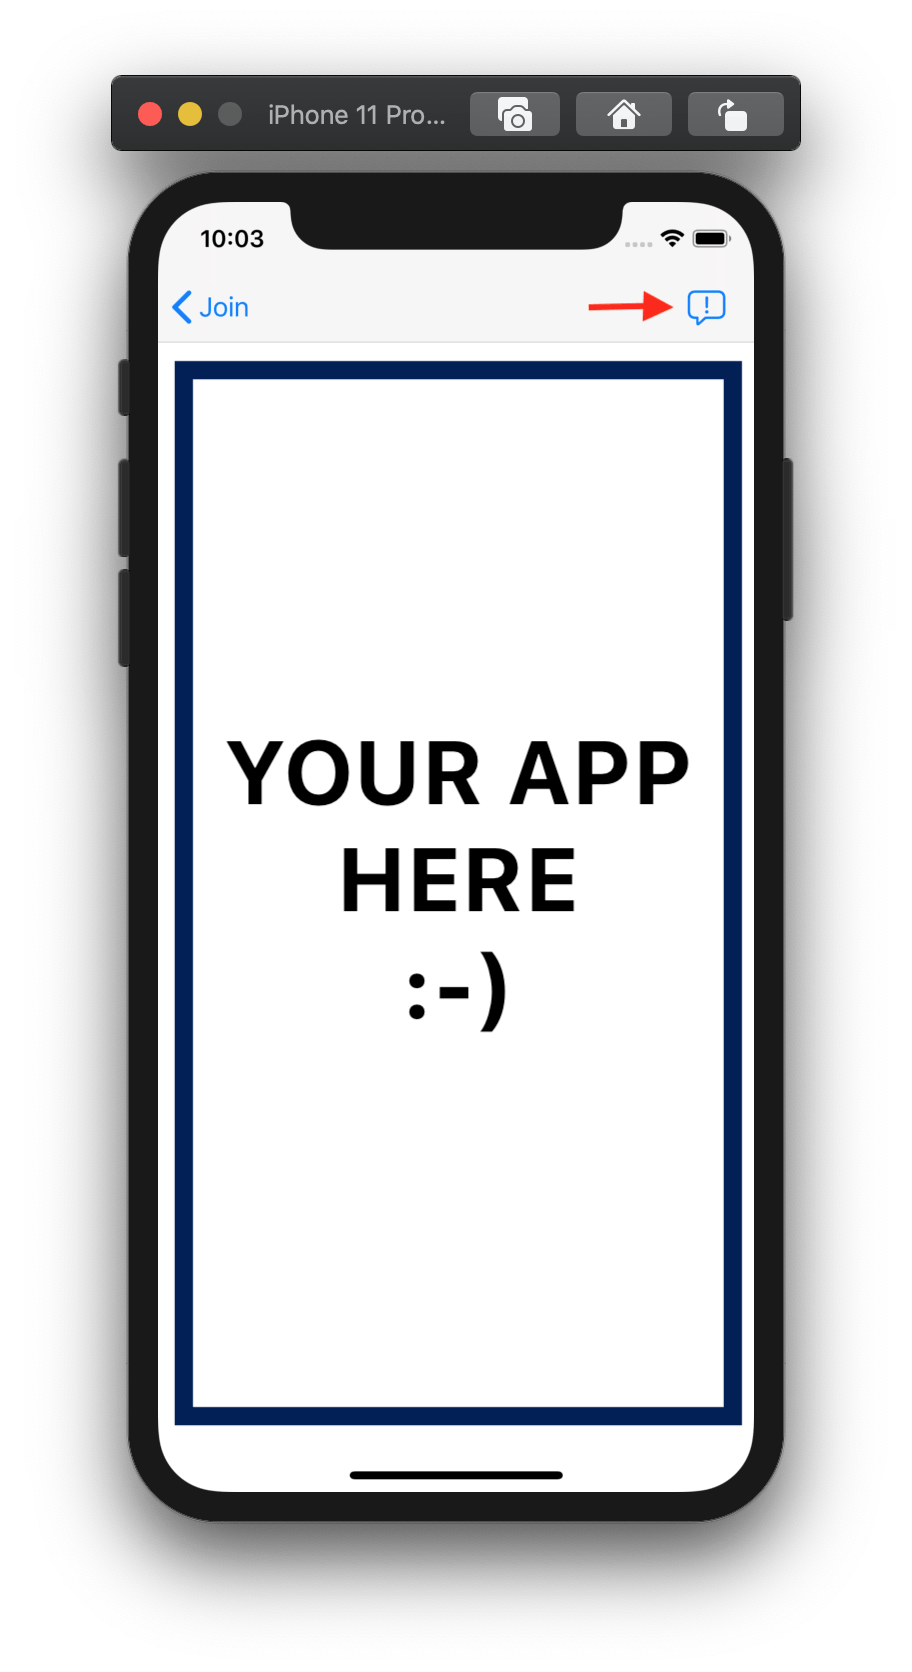 Screenshot shows an app window with a support button that leads to a support chat screen